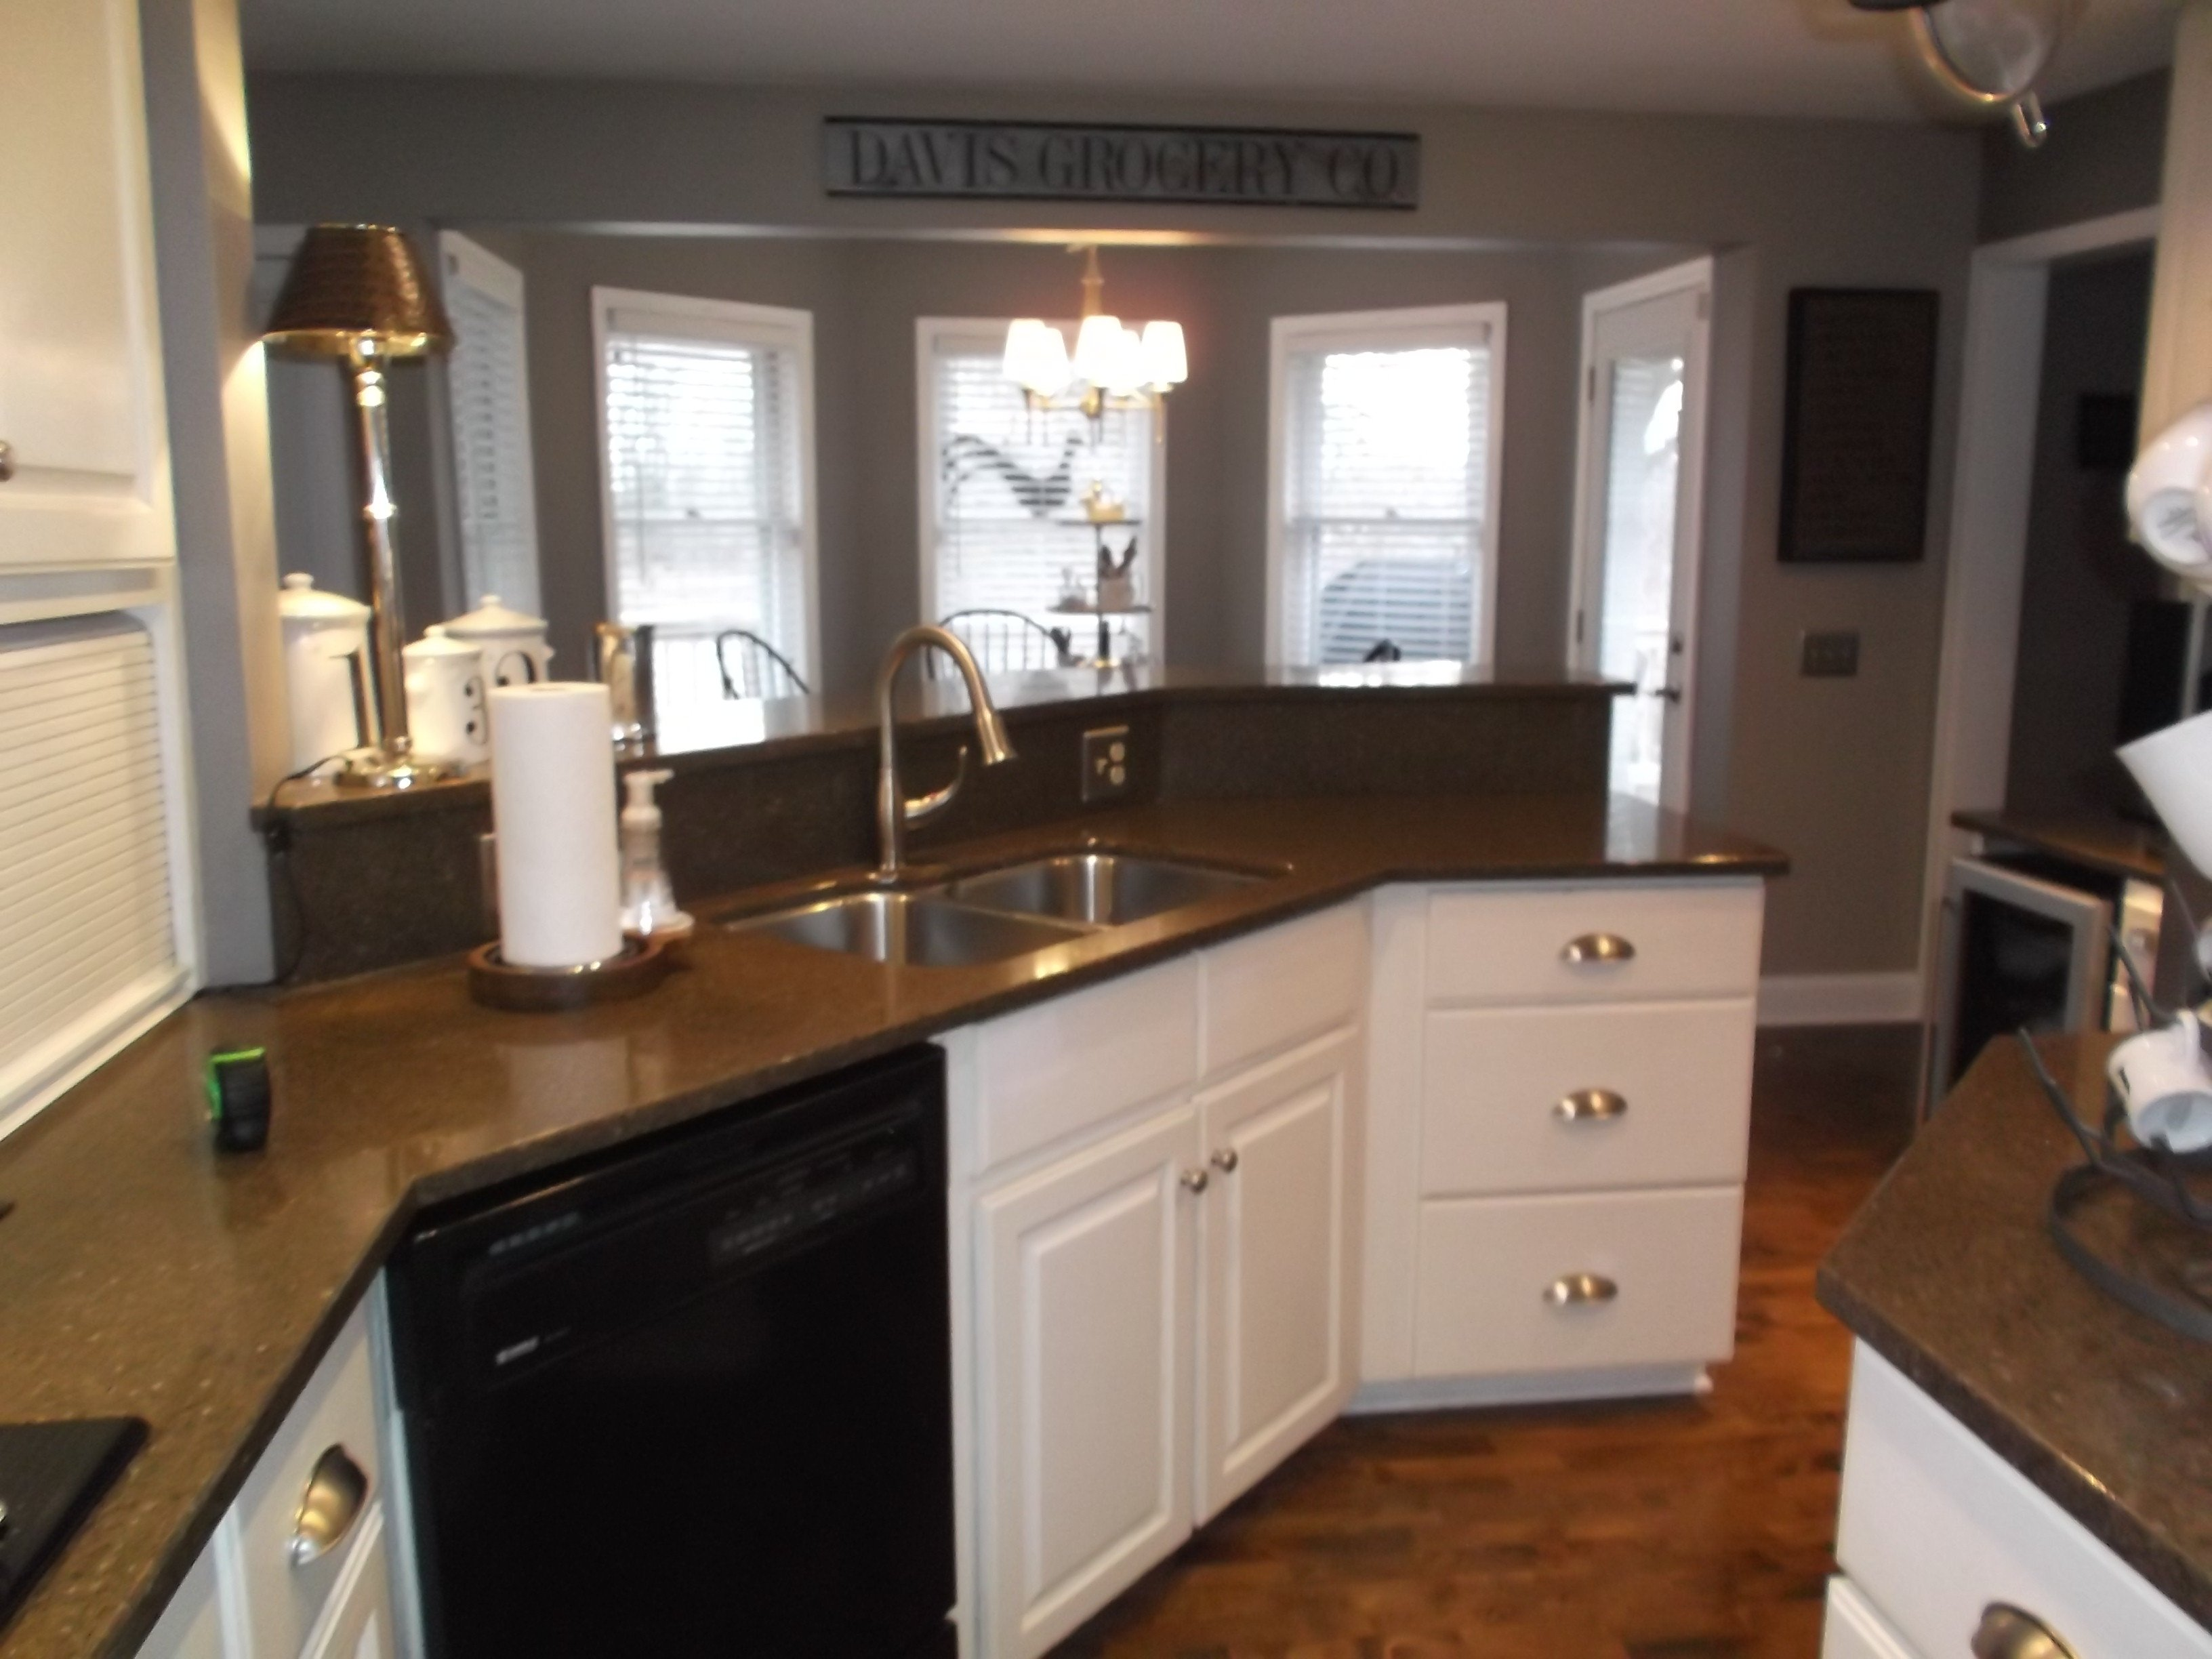 A two-tiered kitchen peninsula made the countertop space feel diminished and blocked the view around the room.